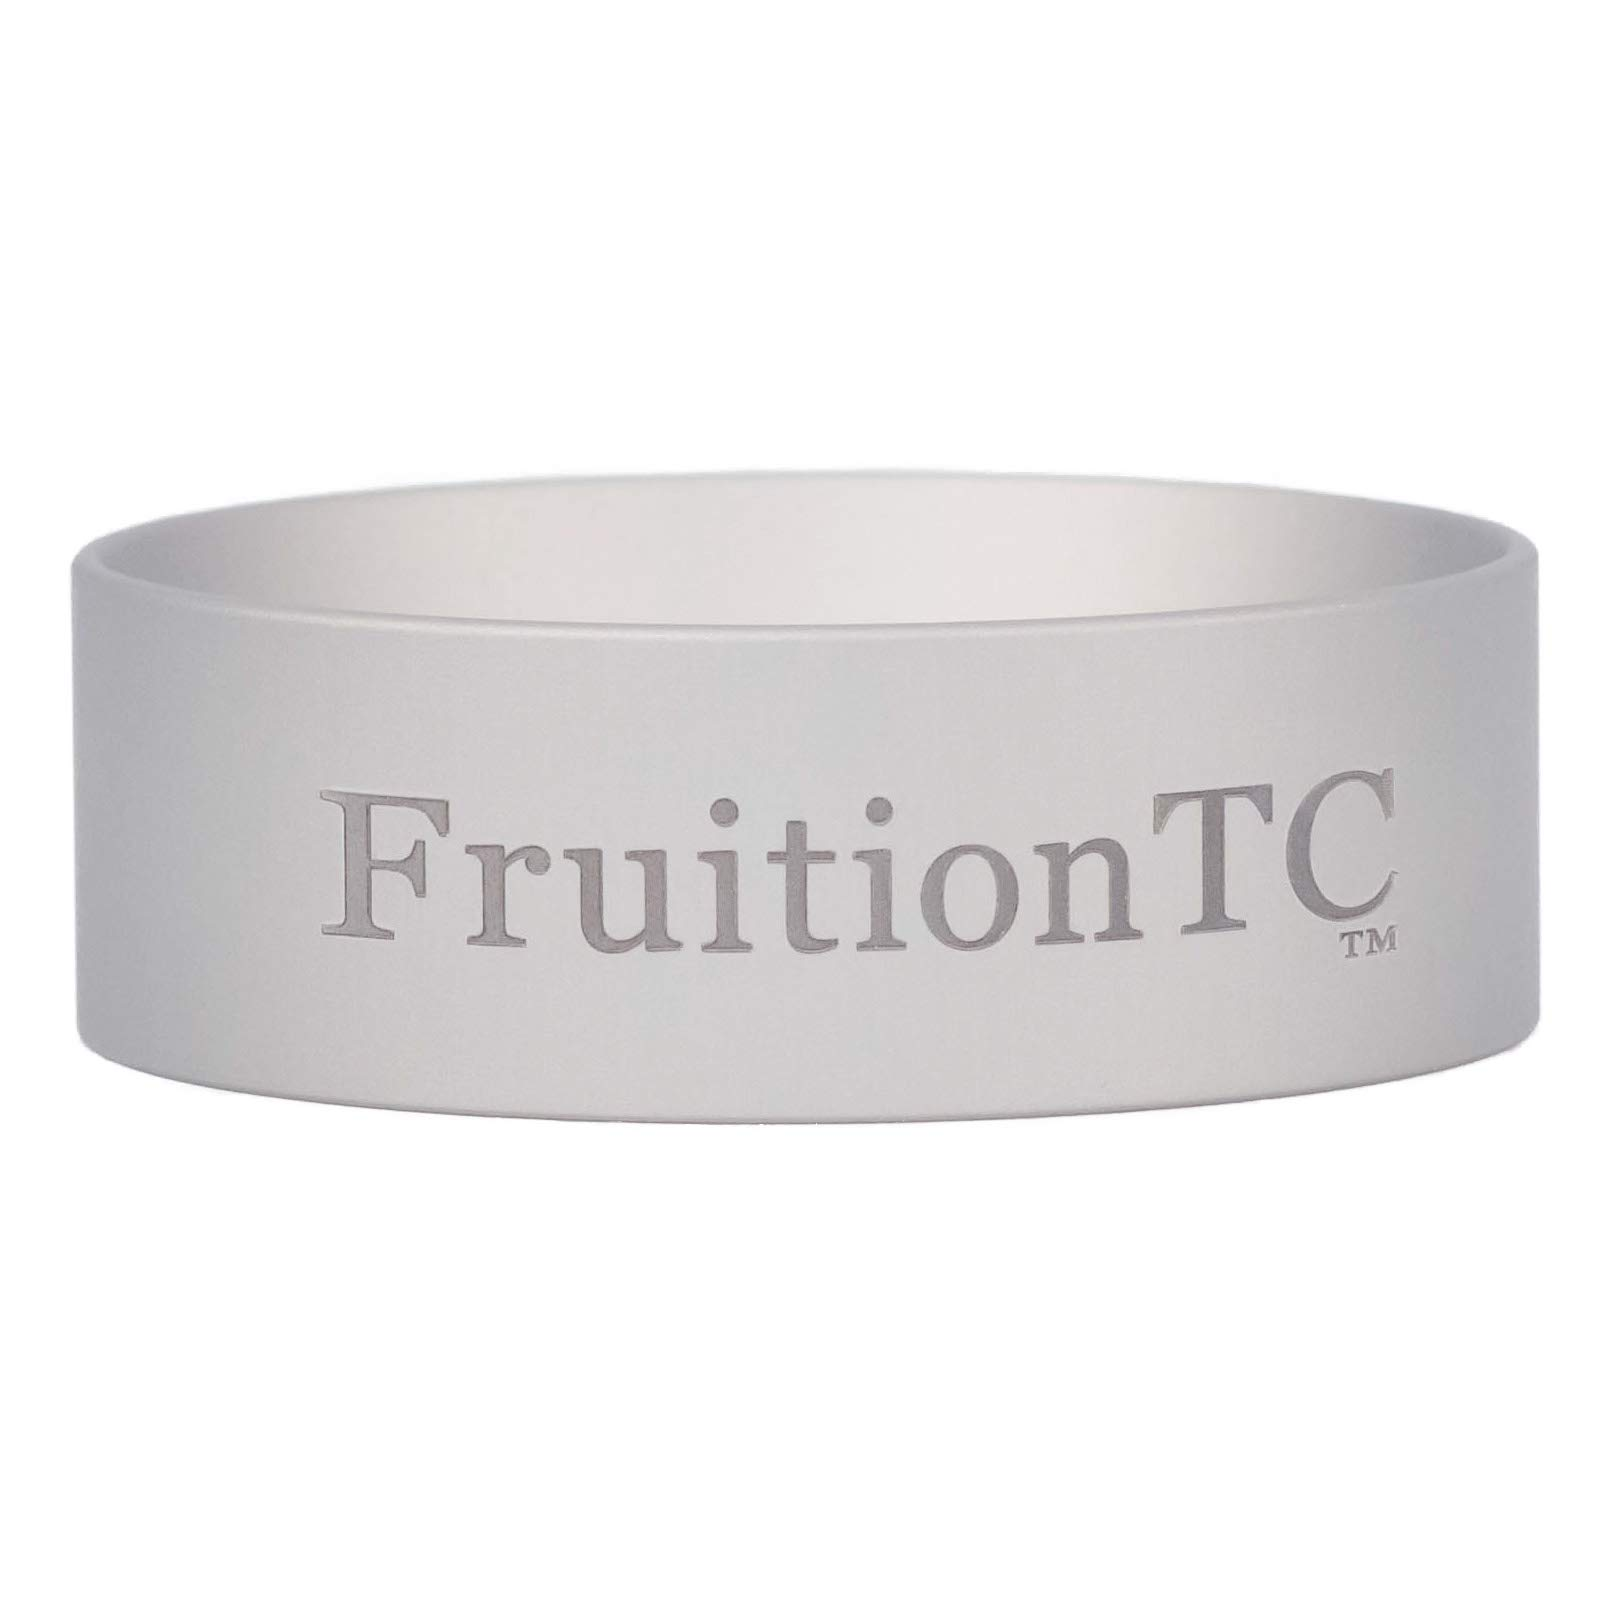 Espresso Dosing Funnel - 58mm by Fruition Tamp & Coffee (Image #1)